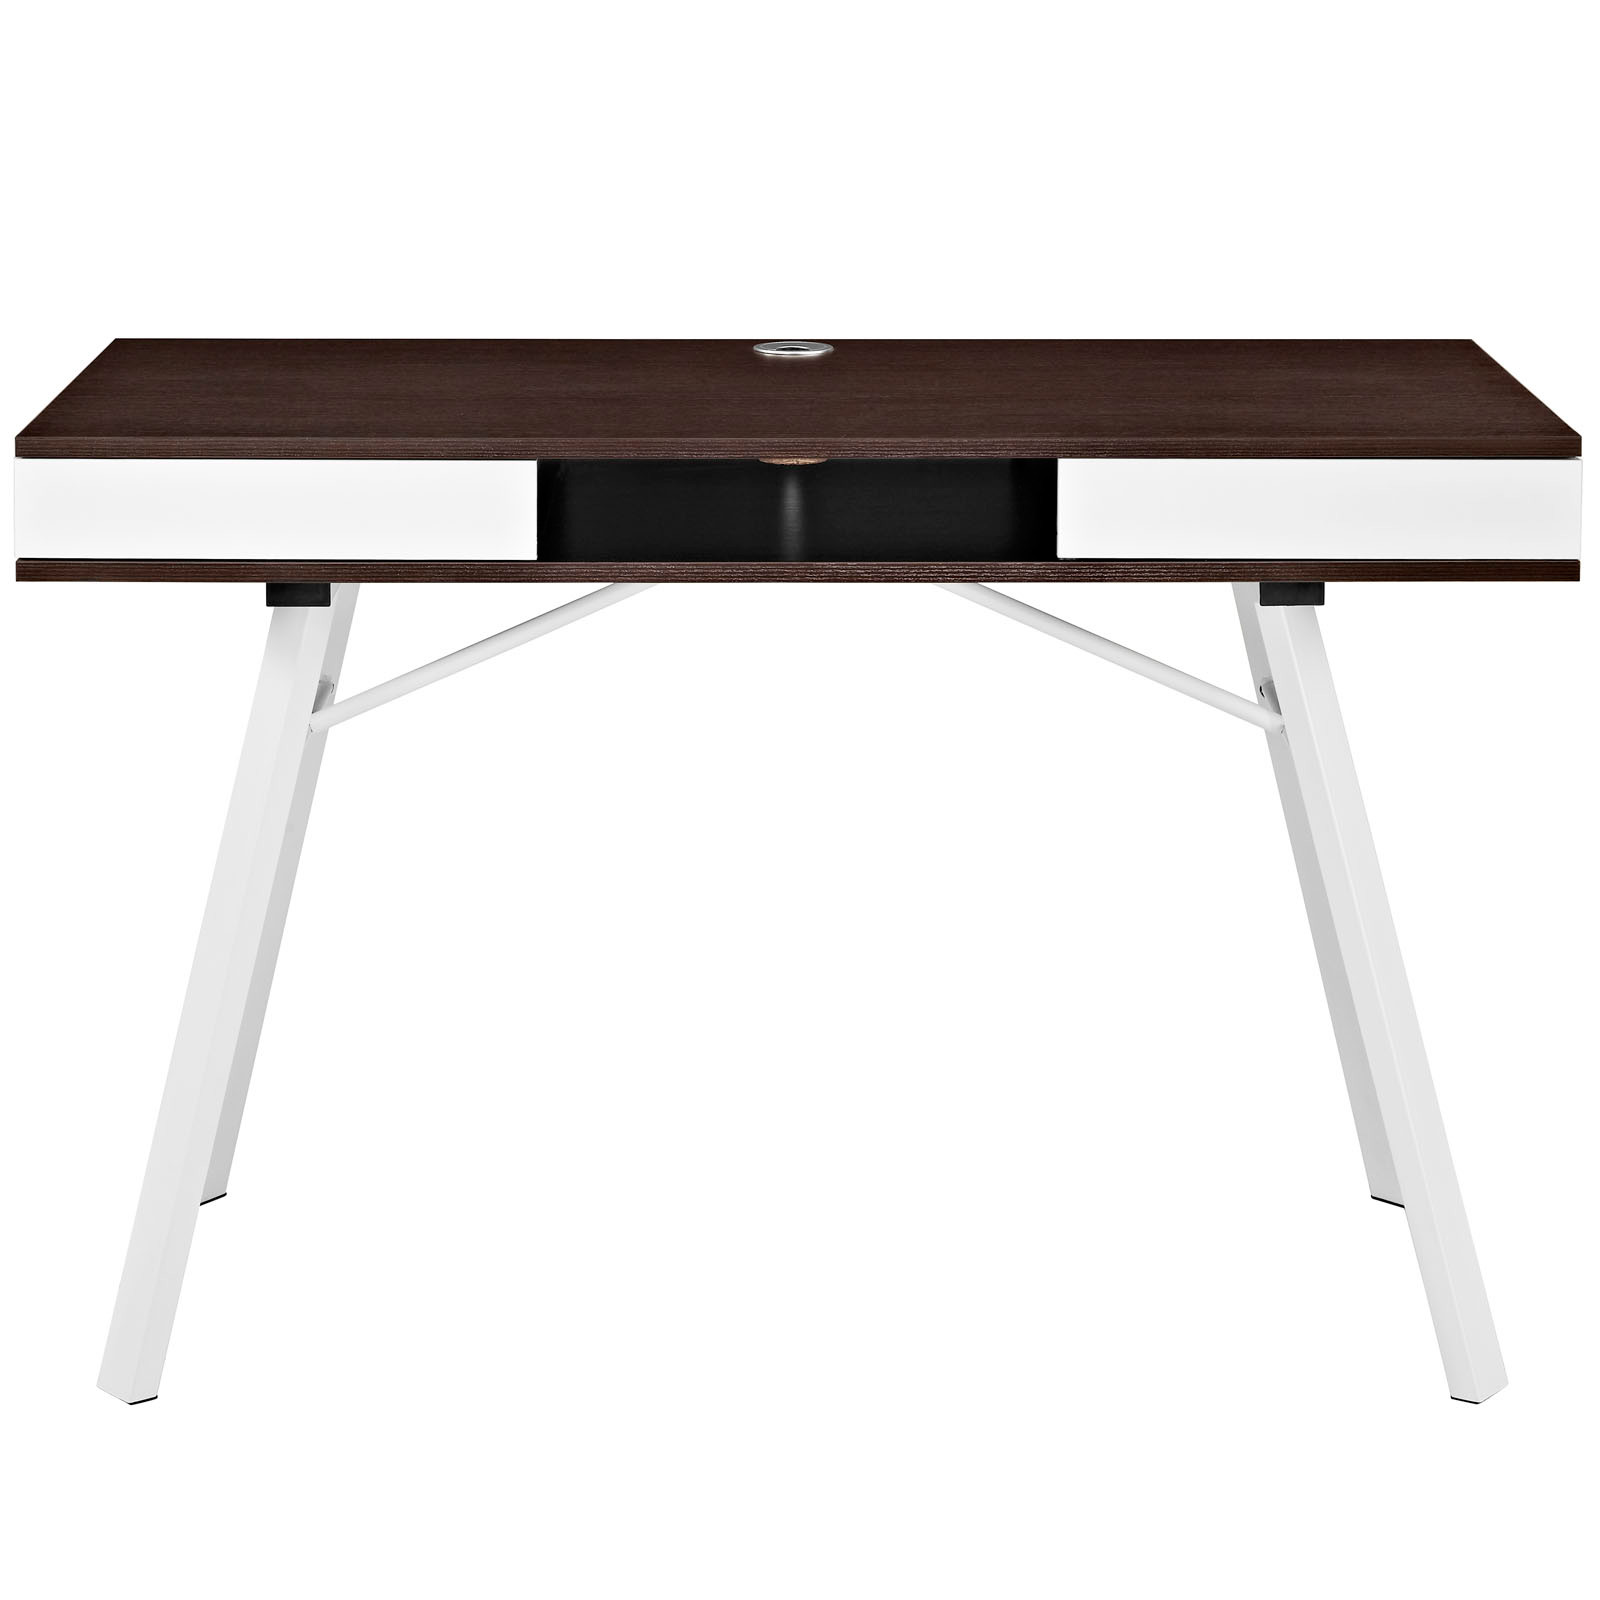 space saving desk from modway front view shown in cherry brown